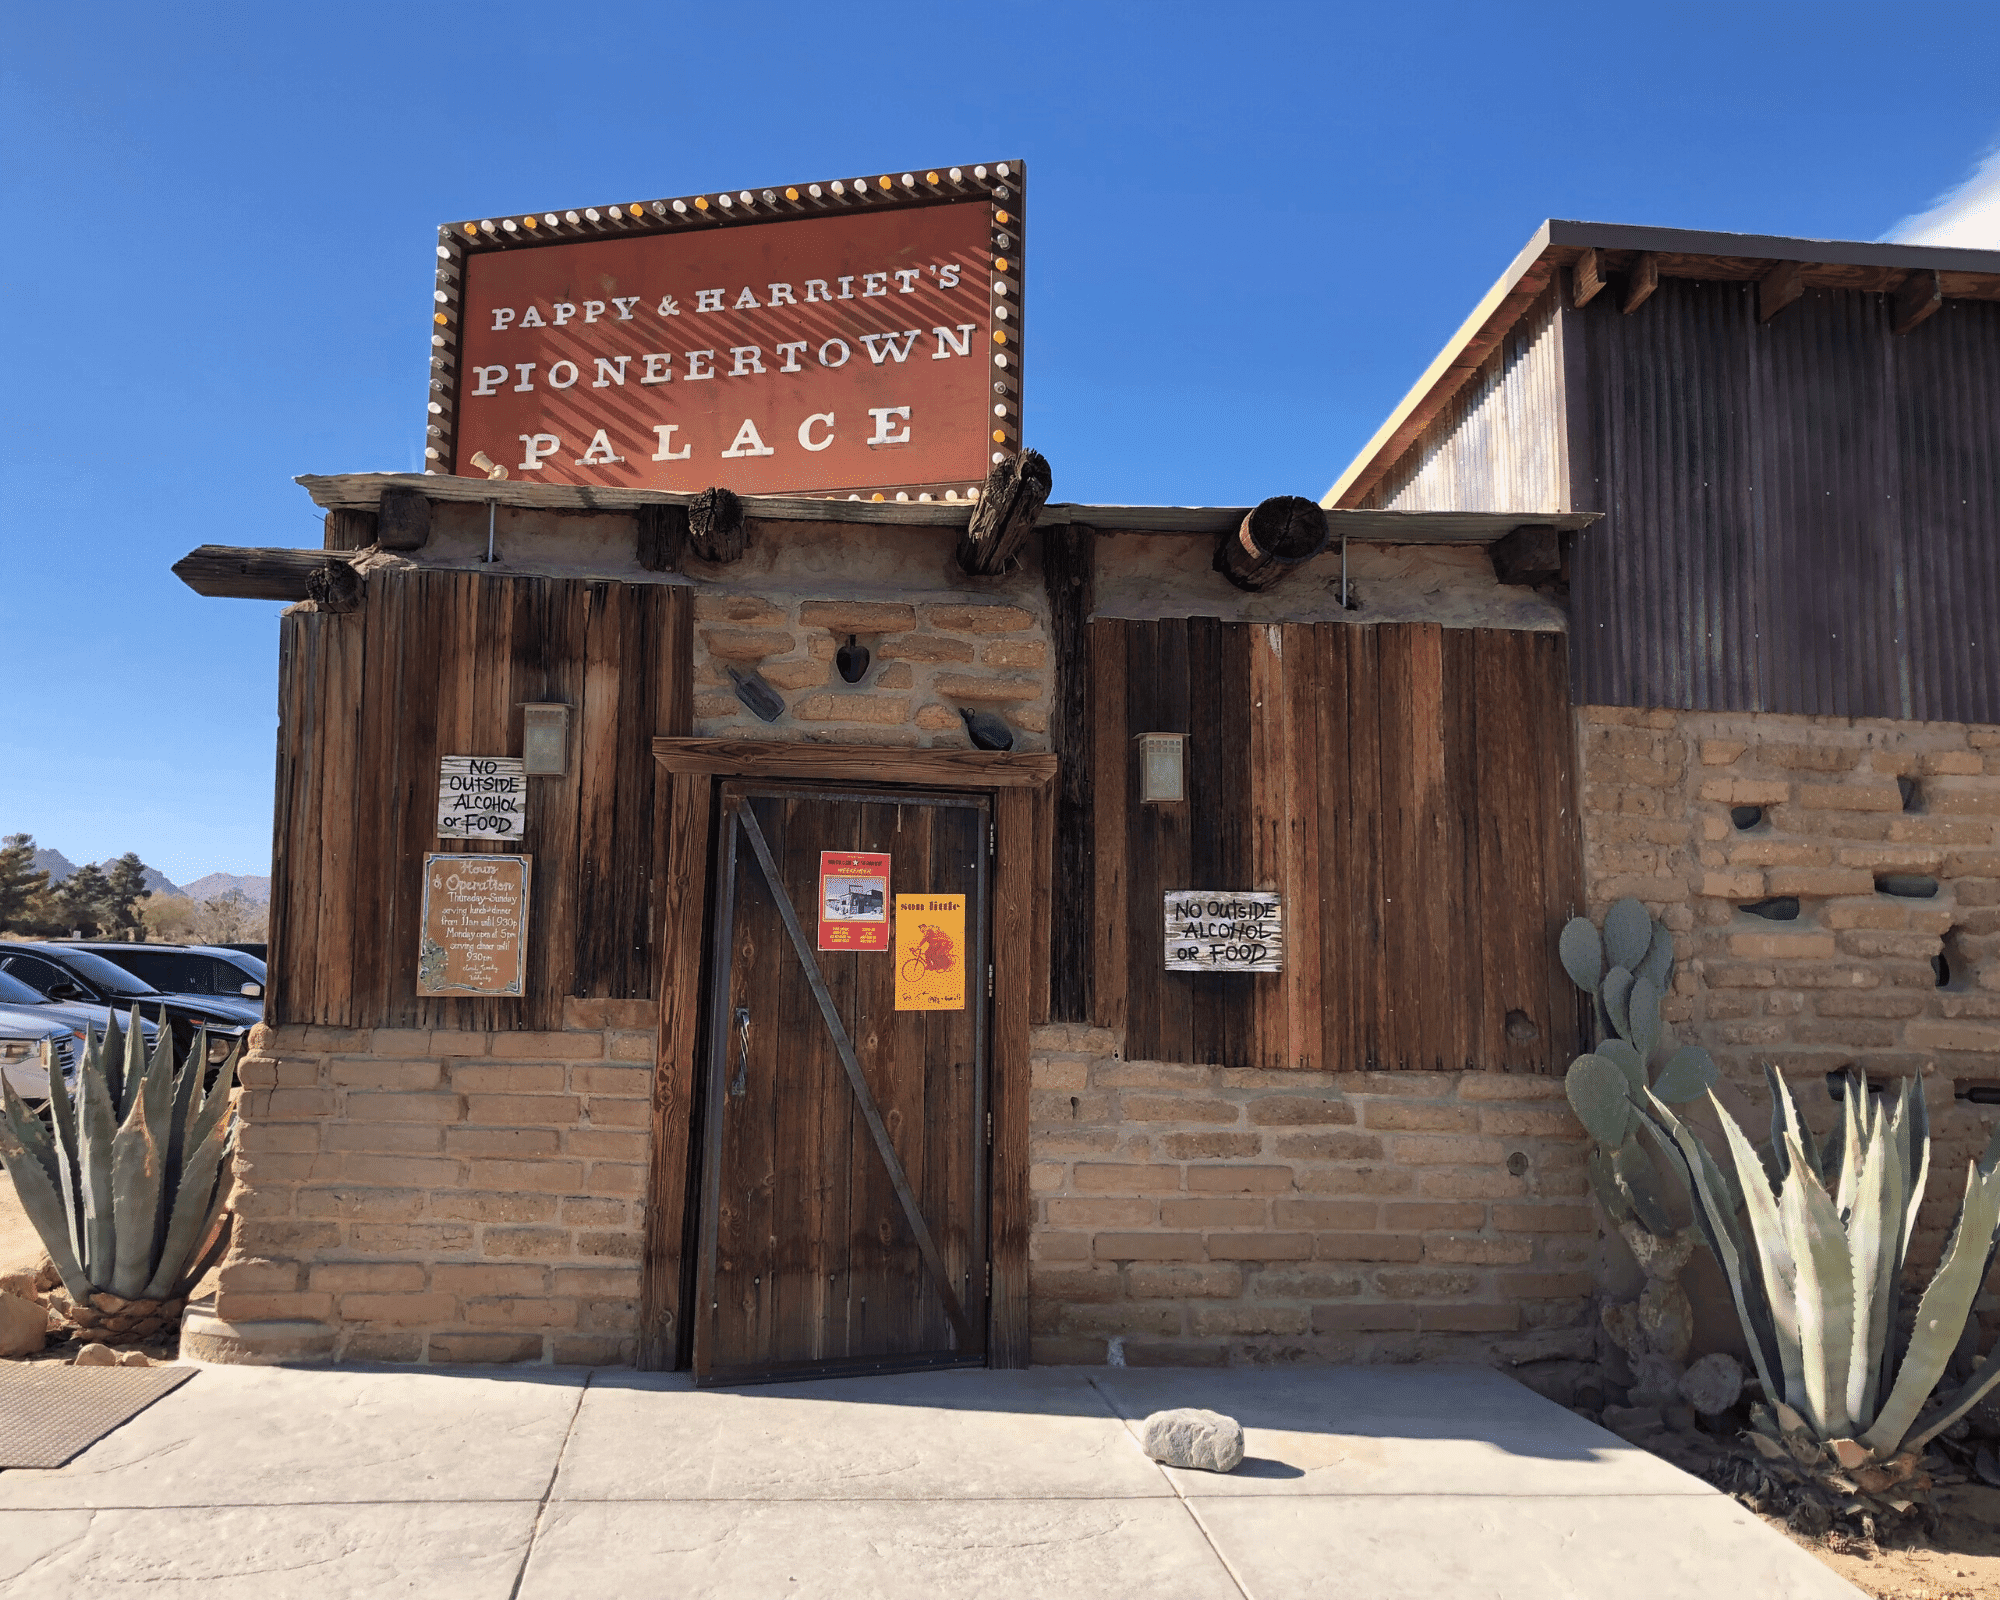 Pappy & Harriet's Restaurant Pioneertown